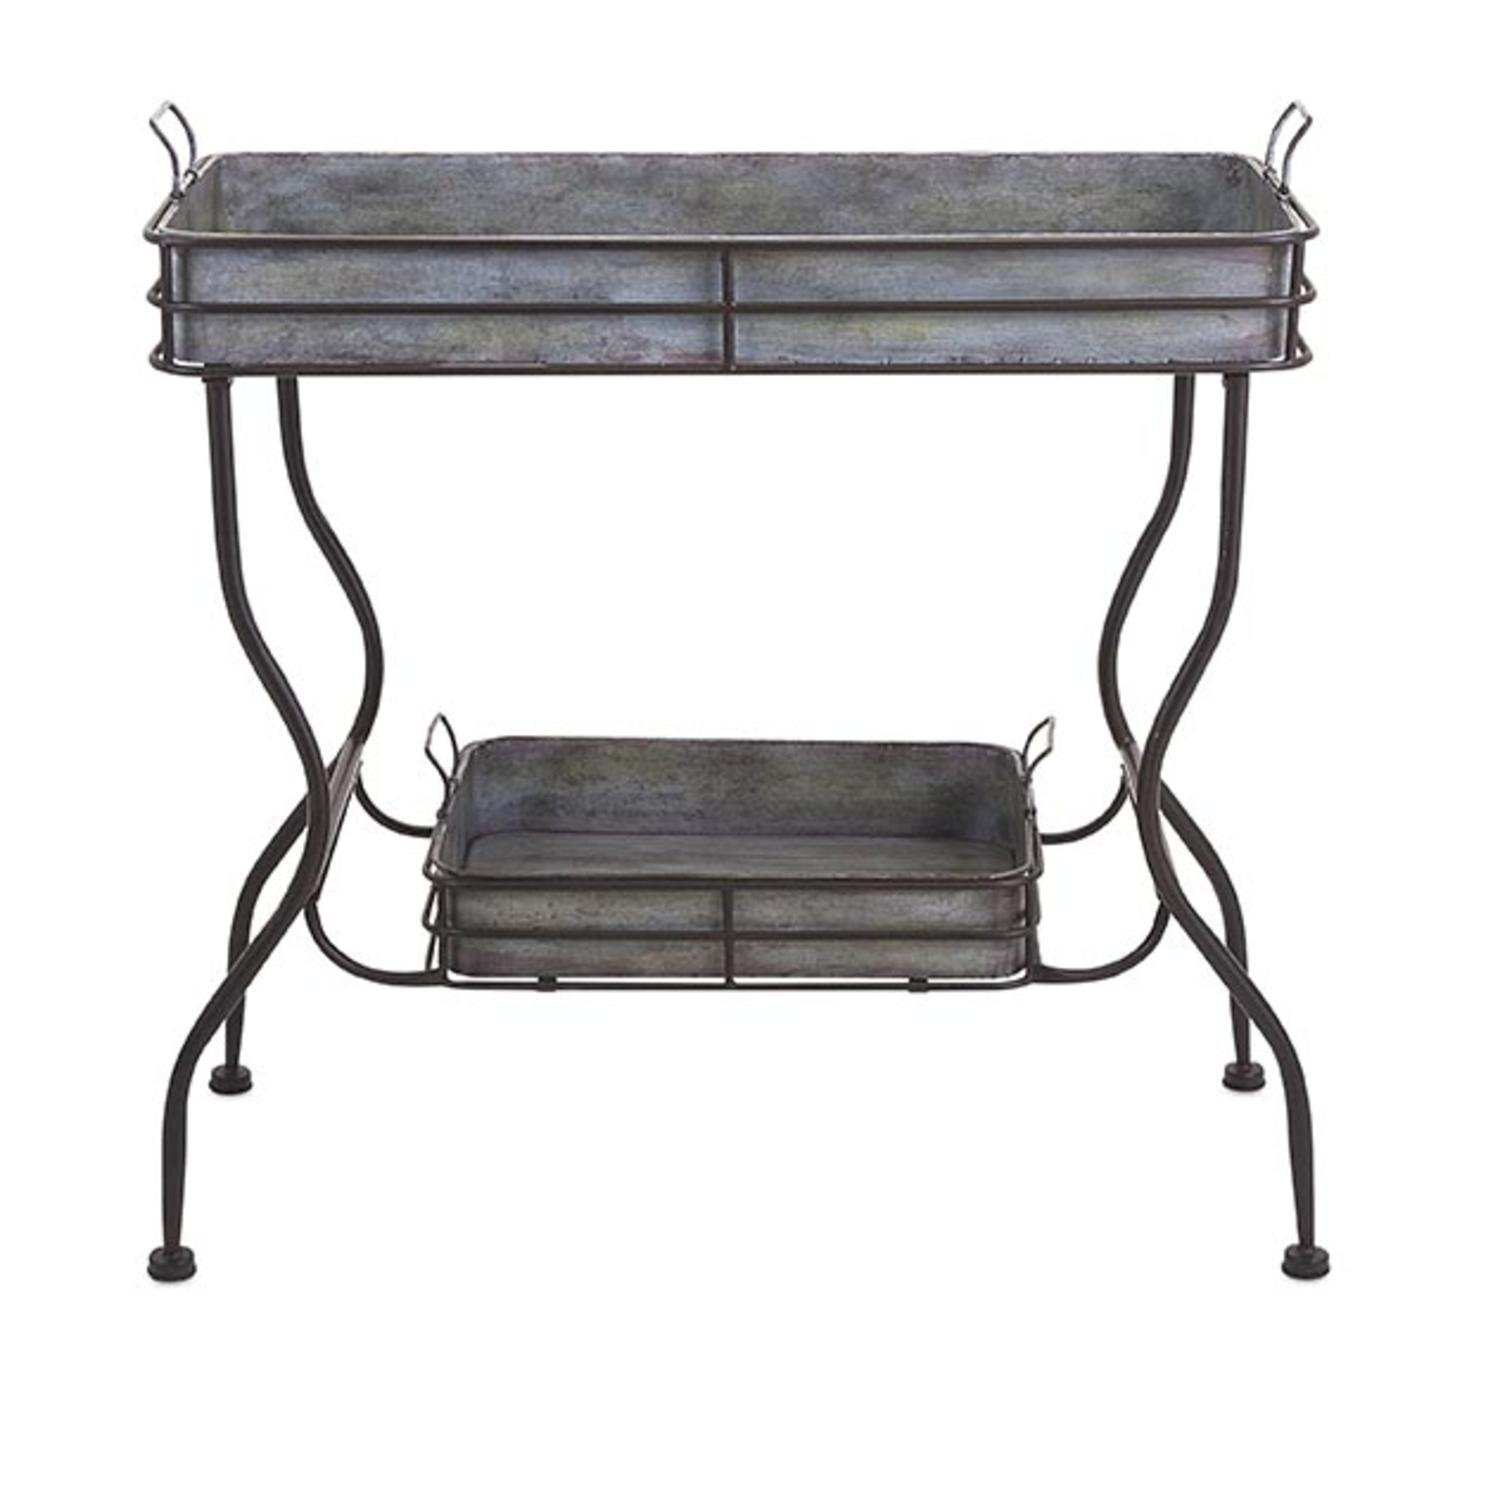 rustic silver galvanized metal accent table with removable serving trays free shipping today vintage lucite small outdoor triangle side half circle hall winsome timmy lamps end